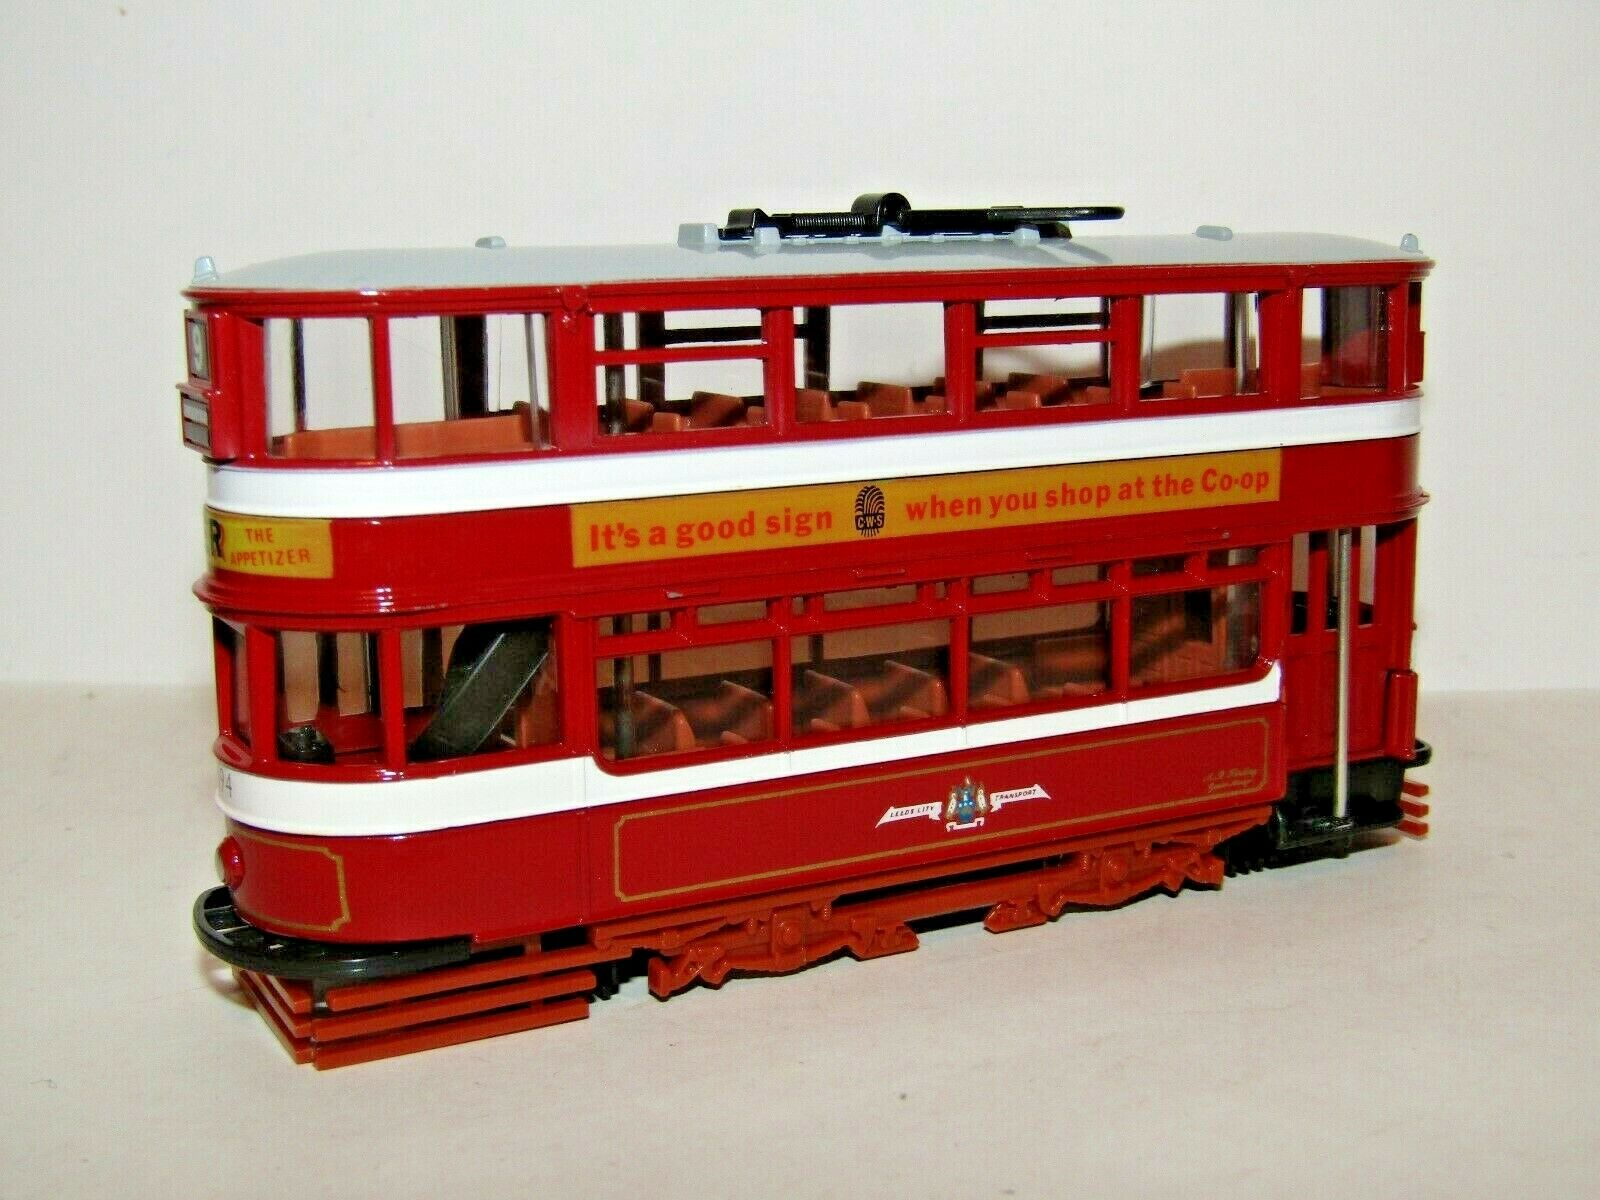 EFE LEEDS HORSFIELD TRAM LEEDS CITY TRANSPORT ROUTE 9 BROWN CHASSIS 1 76 13402A